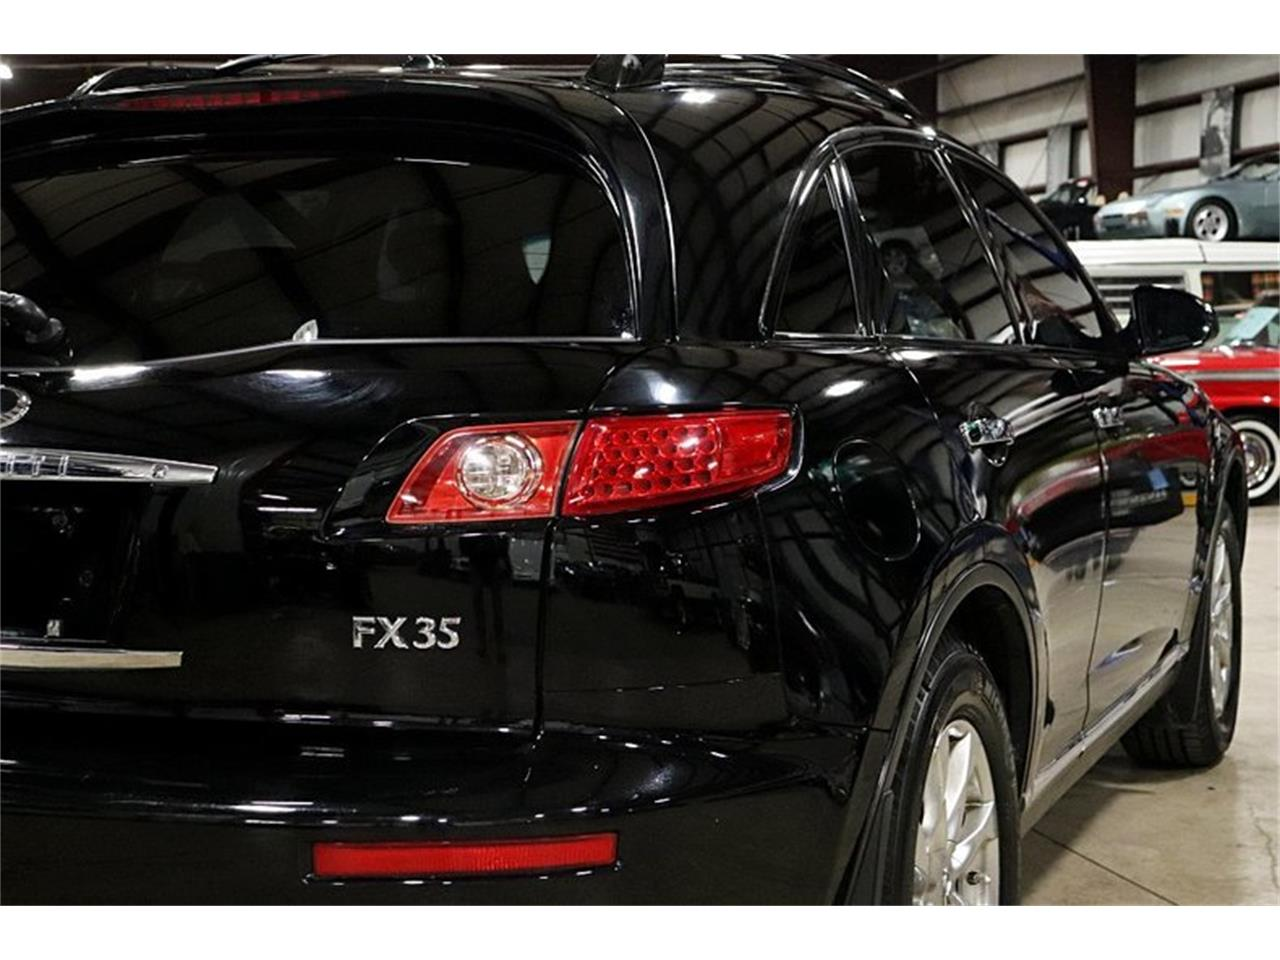 Large Picture of '08 Infiniti FX35 located in Michigan Offered by GR Auto Gallery - PY0U